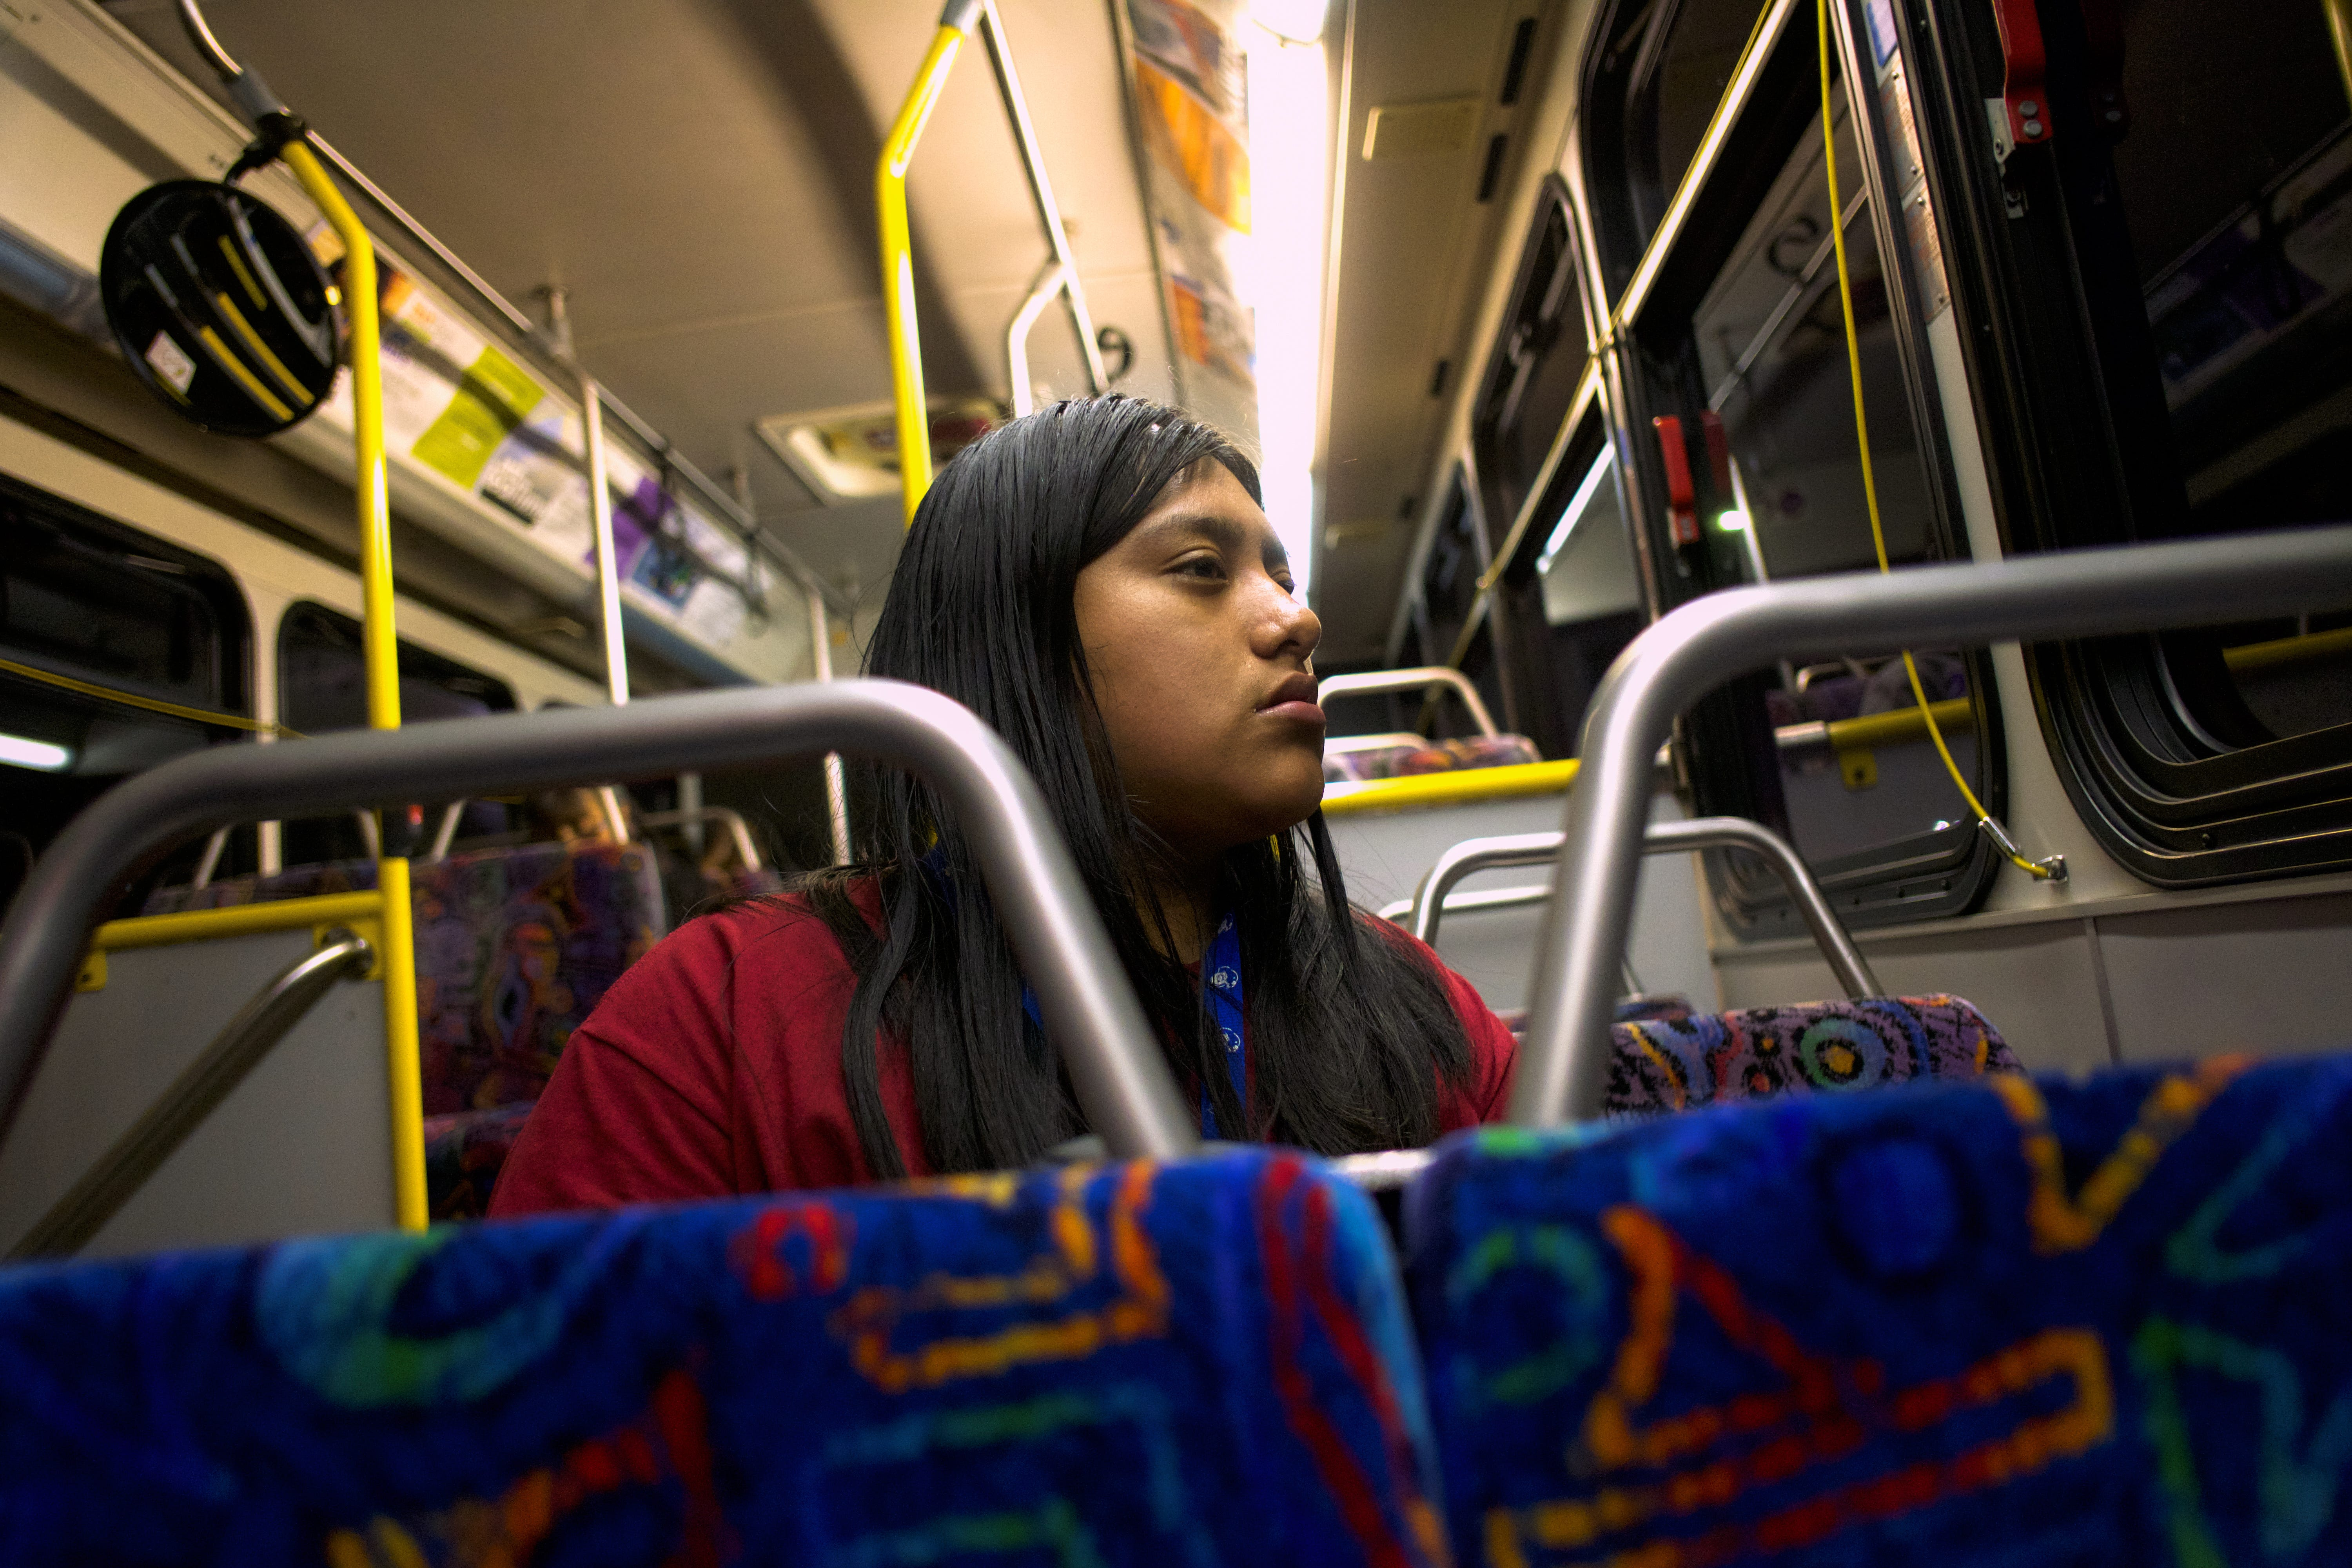 Resi Salvador takes a 40-minute bus ride from CSU Monterey Bay in Seaside, where she goes to school, to her parents' home in Salinas.